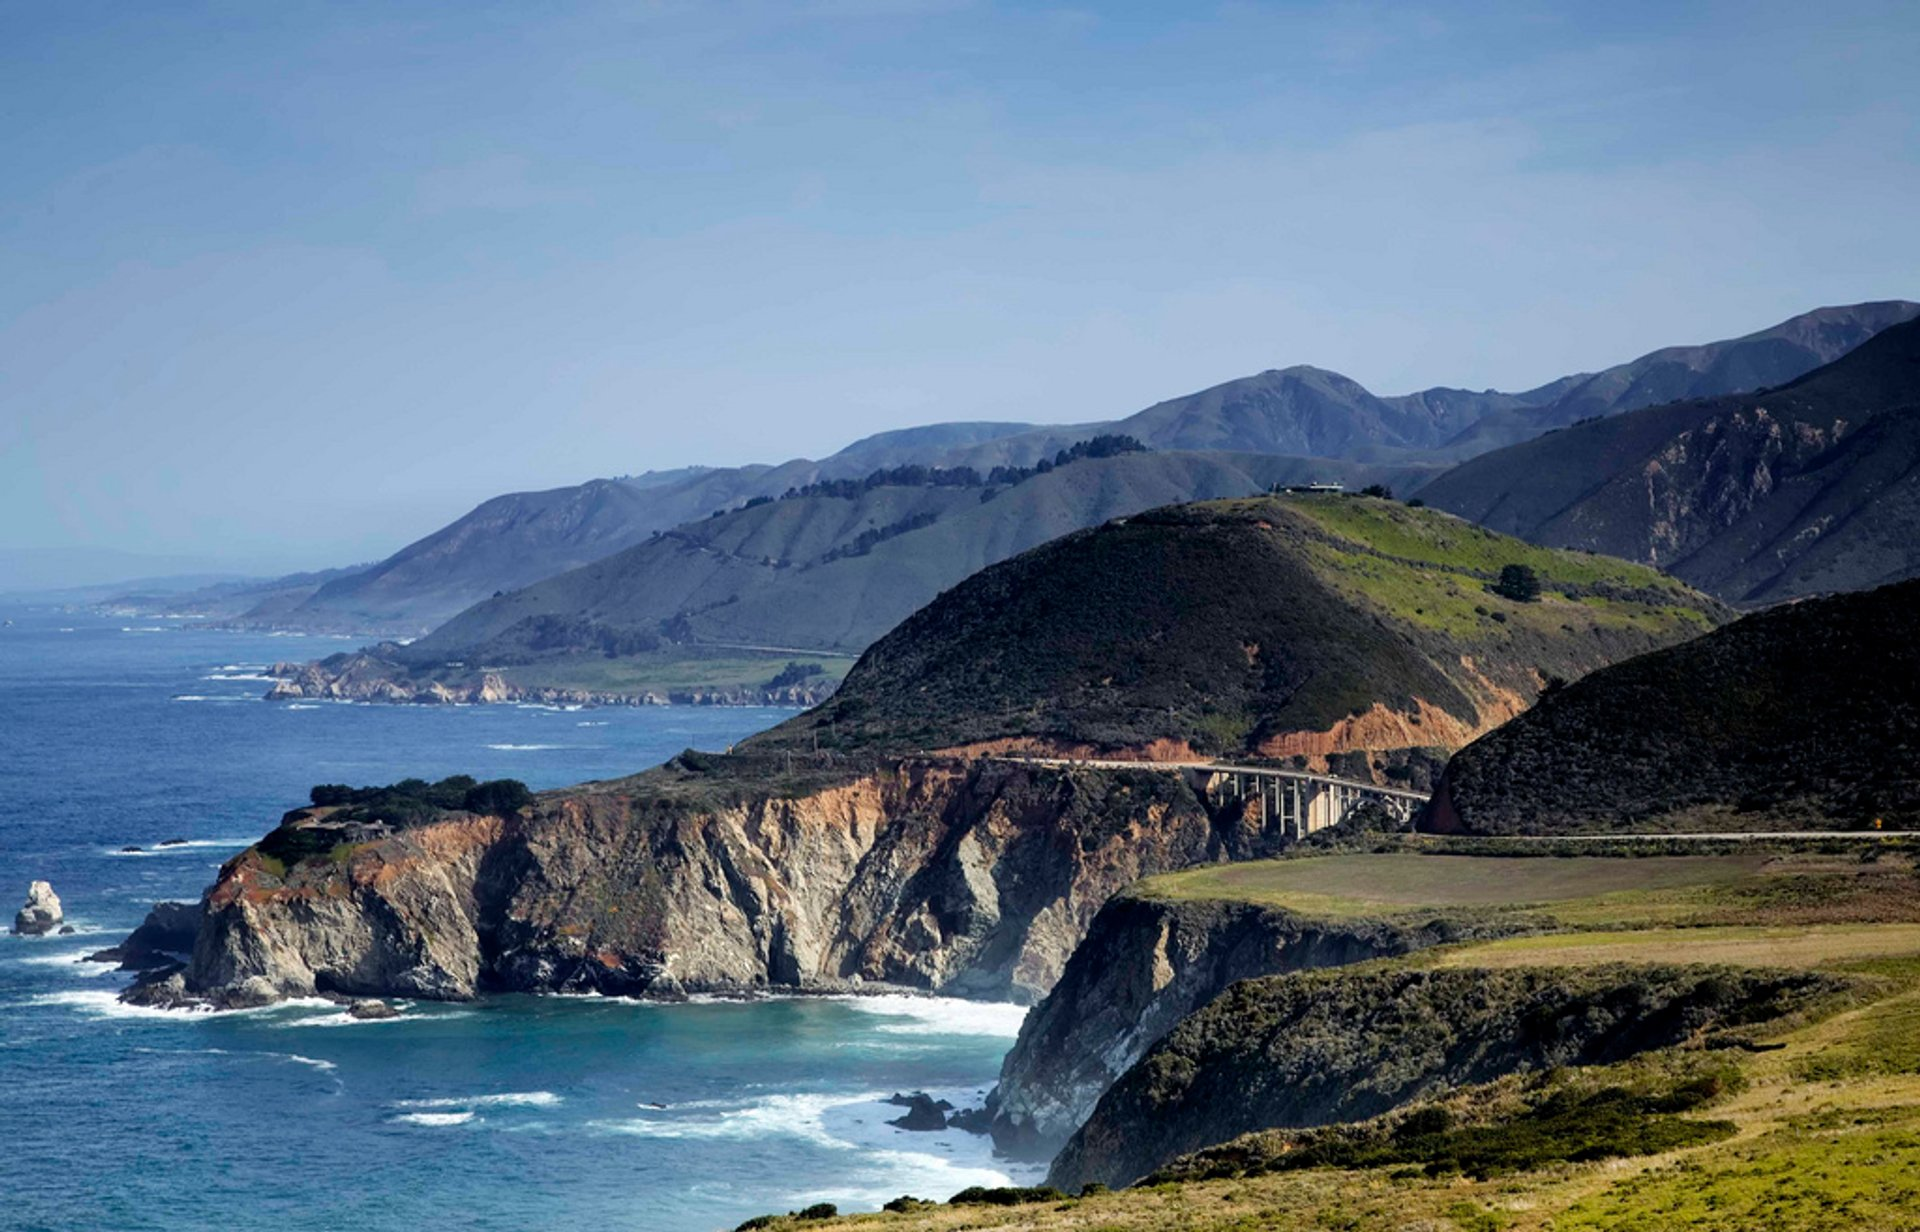 Bixby Creek Bridge crosses over land to land 2019